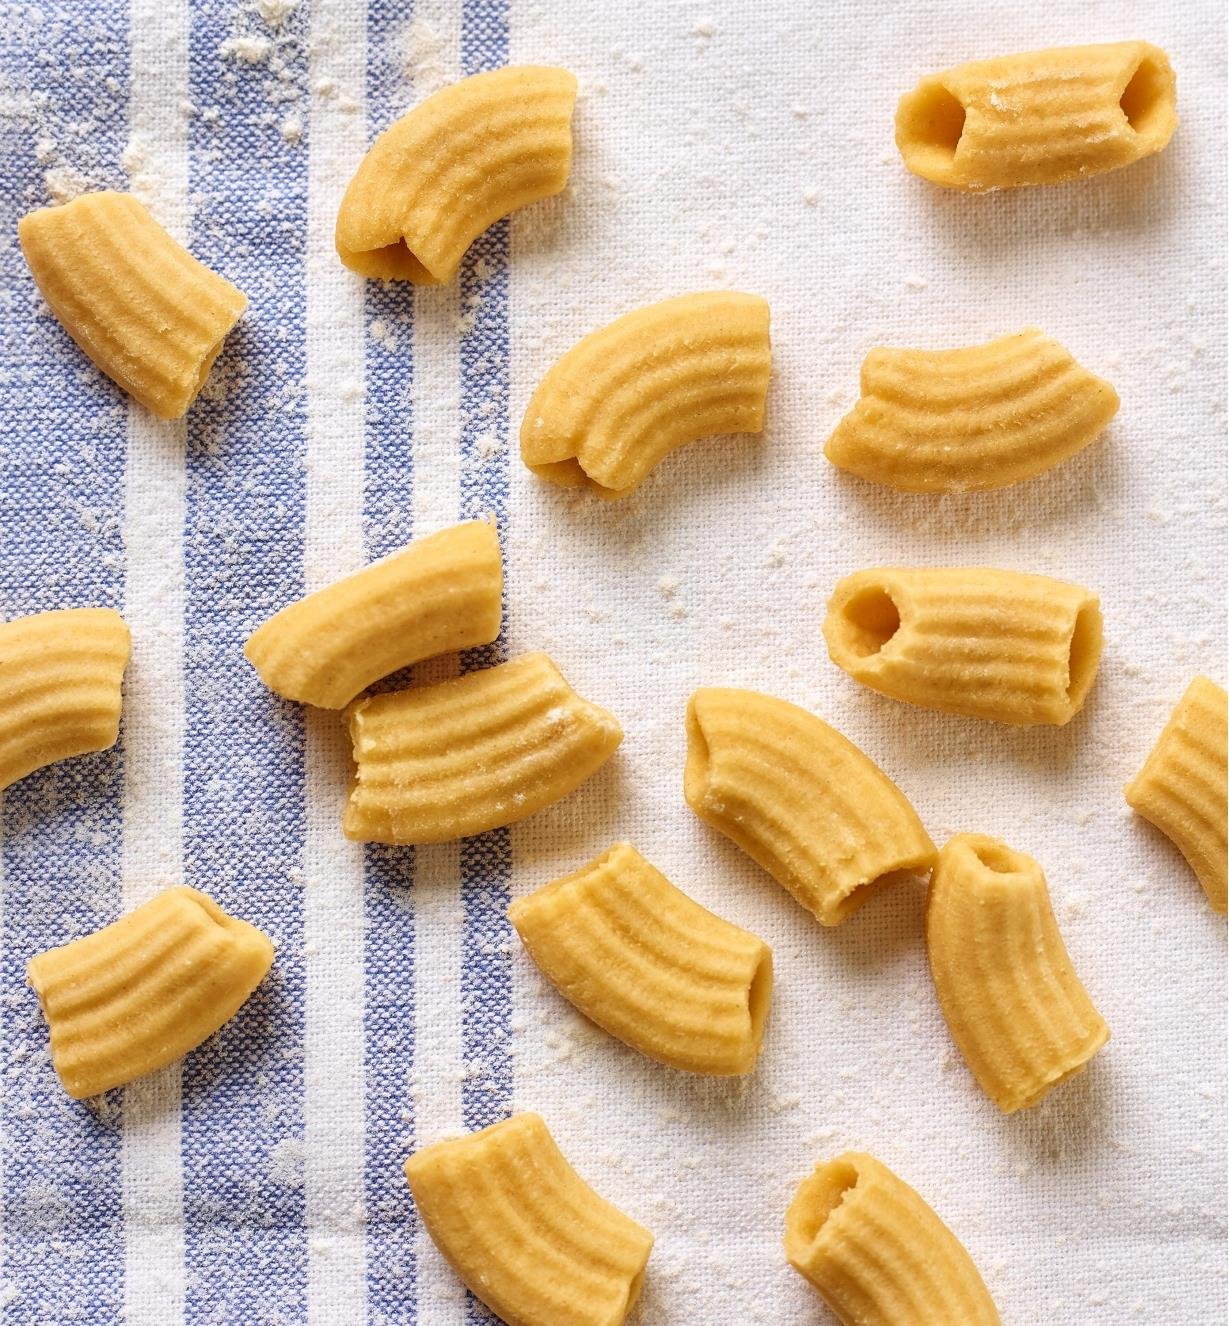 Fresh rigatoni noodles made with the Marcato Pasta Extruder